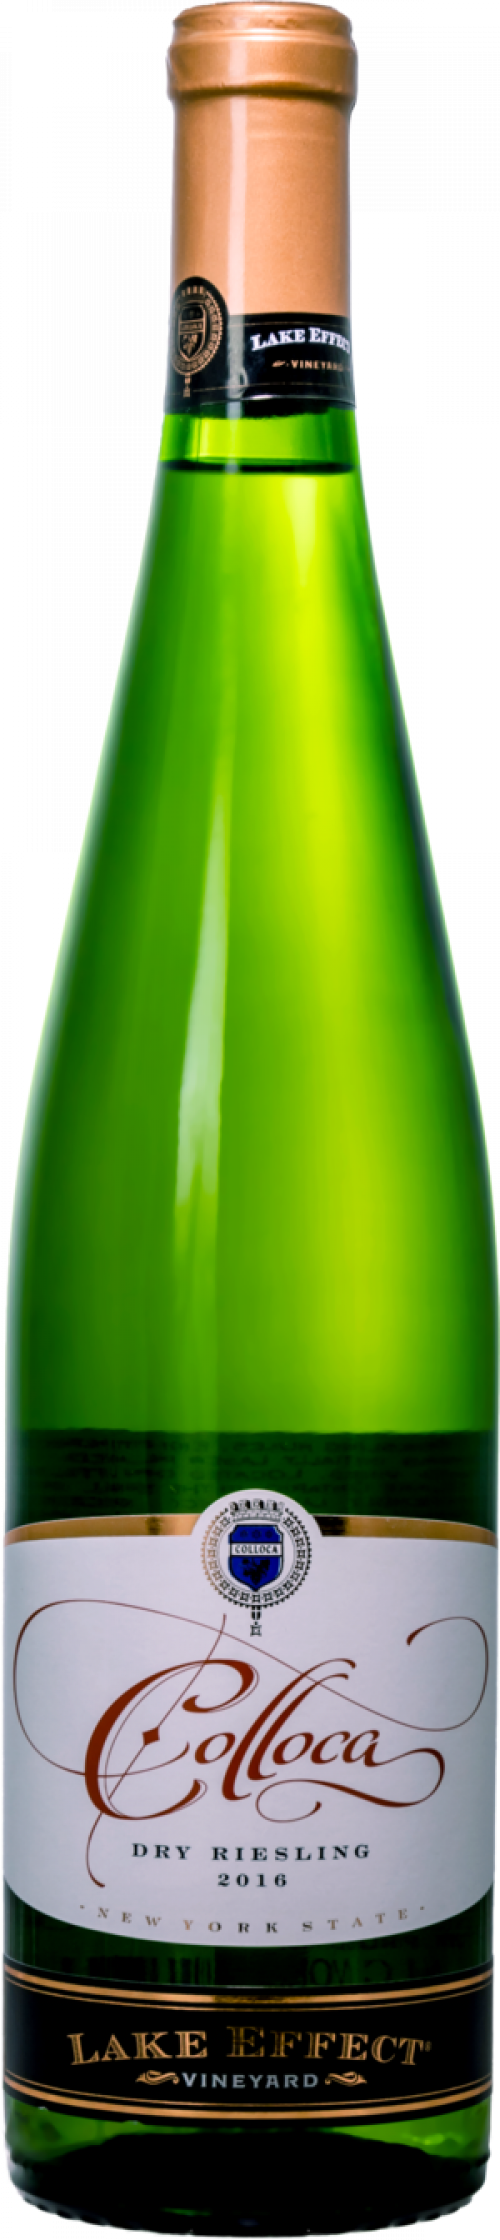 2017 Colloca Lake Effect Dry Riesling 750ml